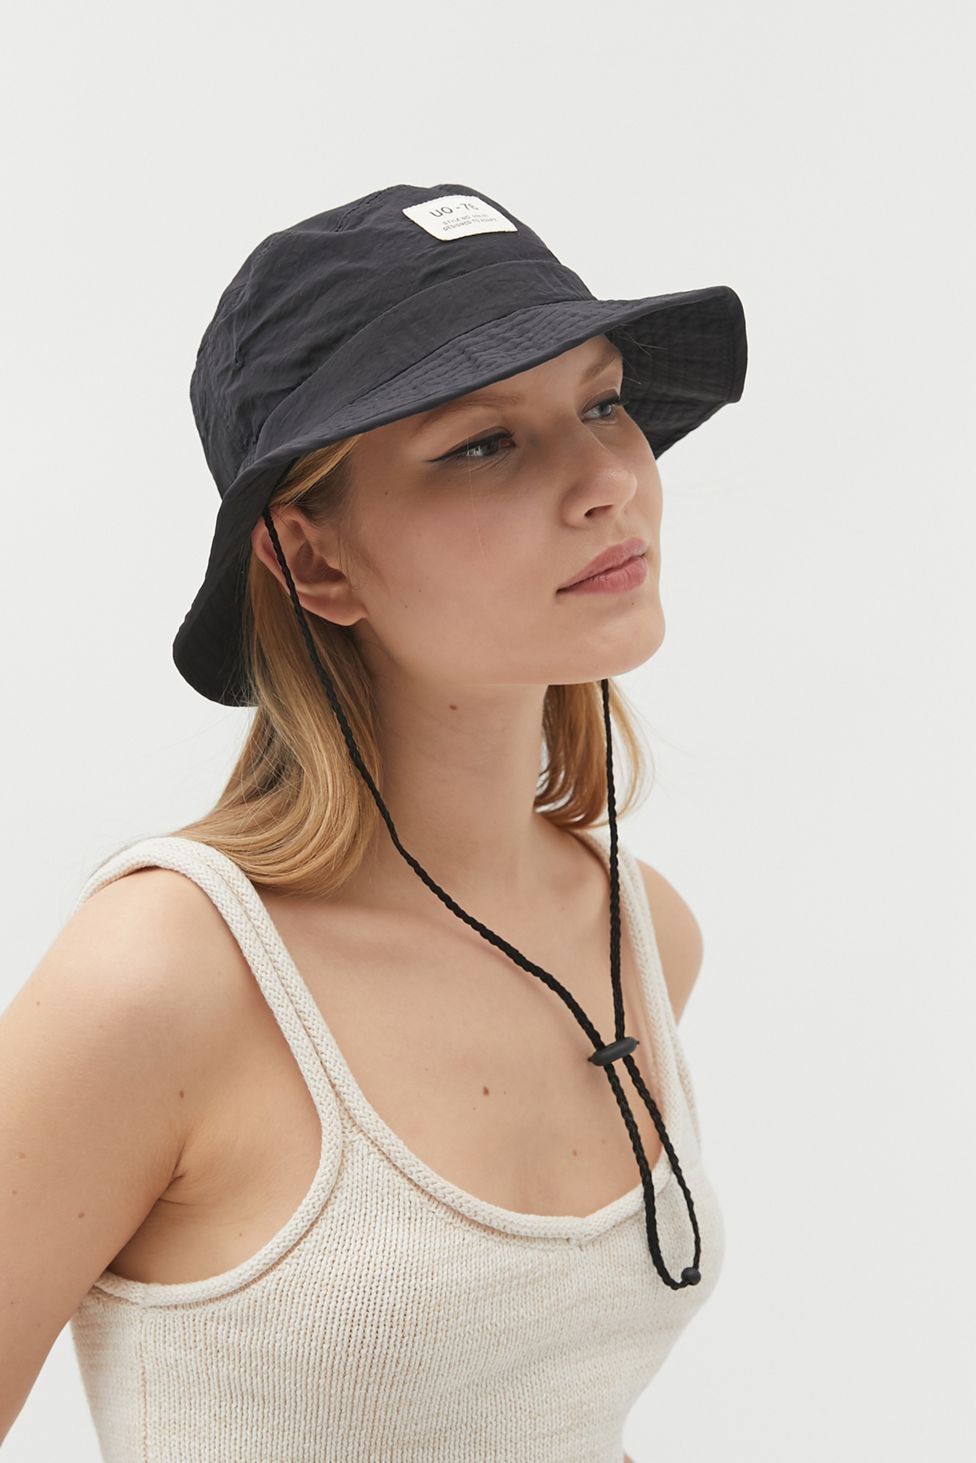 Uo Safari Drawstring Bucket Hat Urban Outfitters Hiking Hats For Women Outfits With Hats Fashion